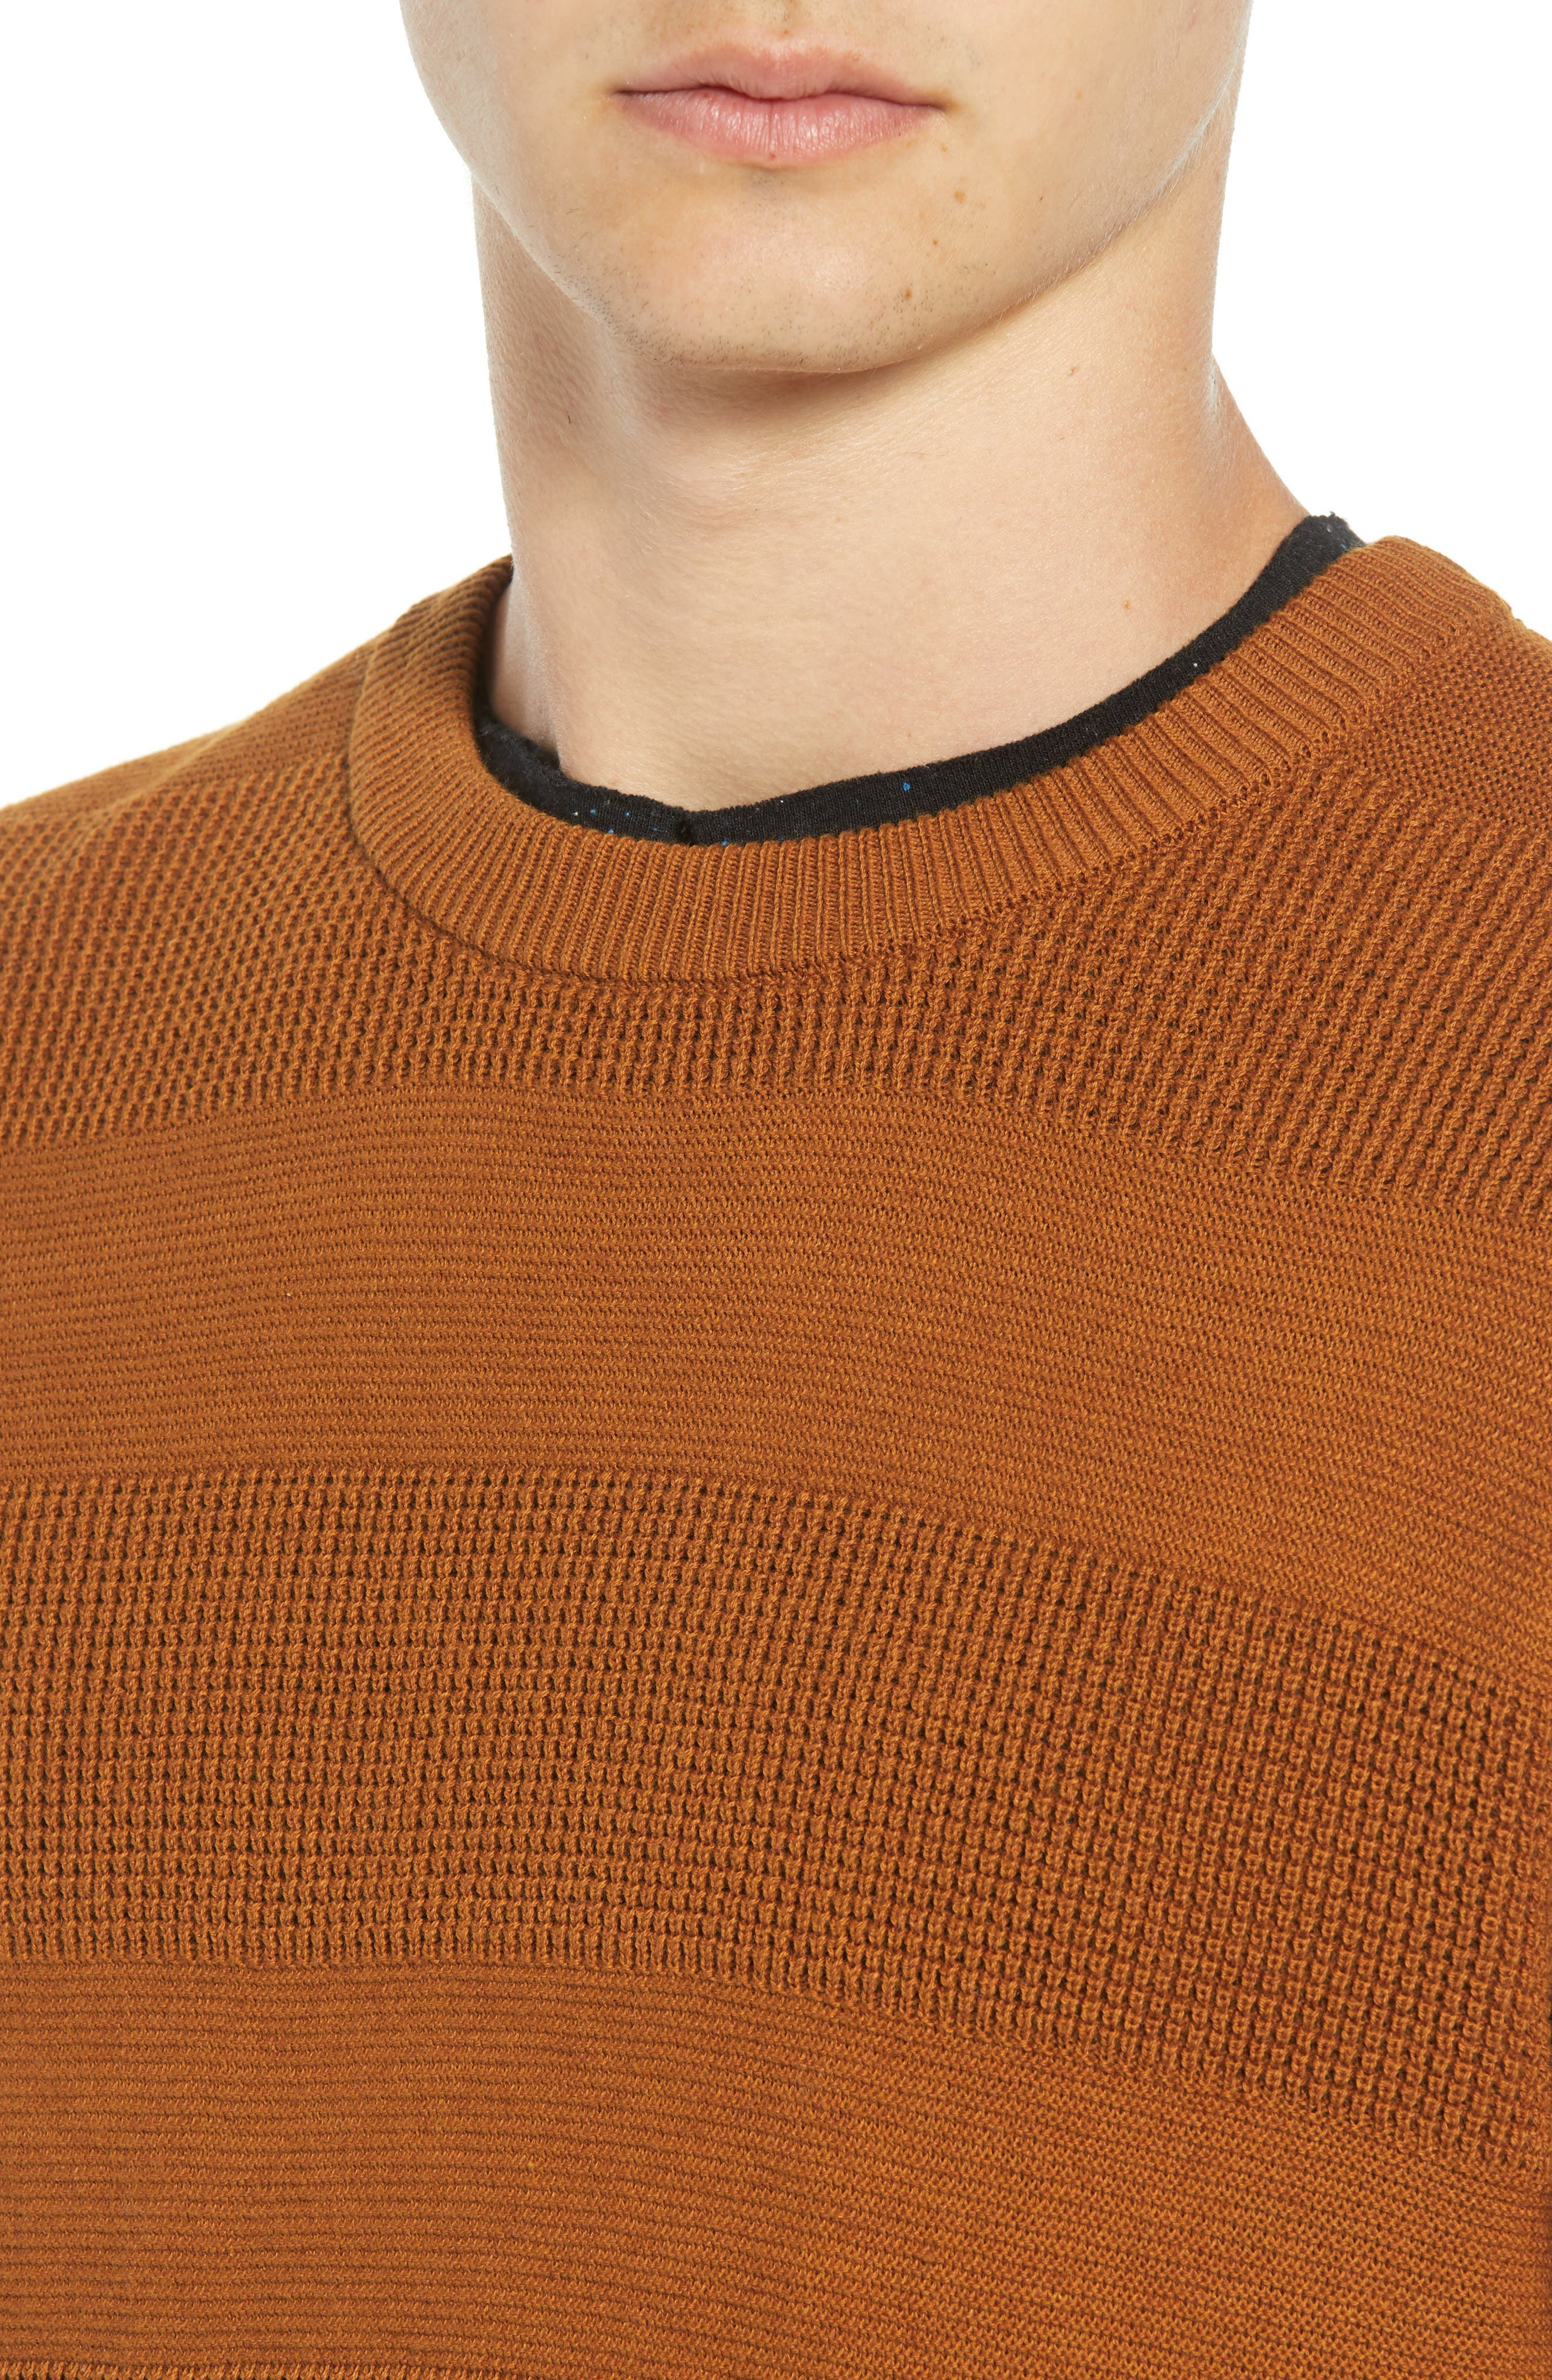 Crewneck Sweater,                             Alternate thumbnail 4, color,                             800